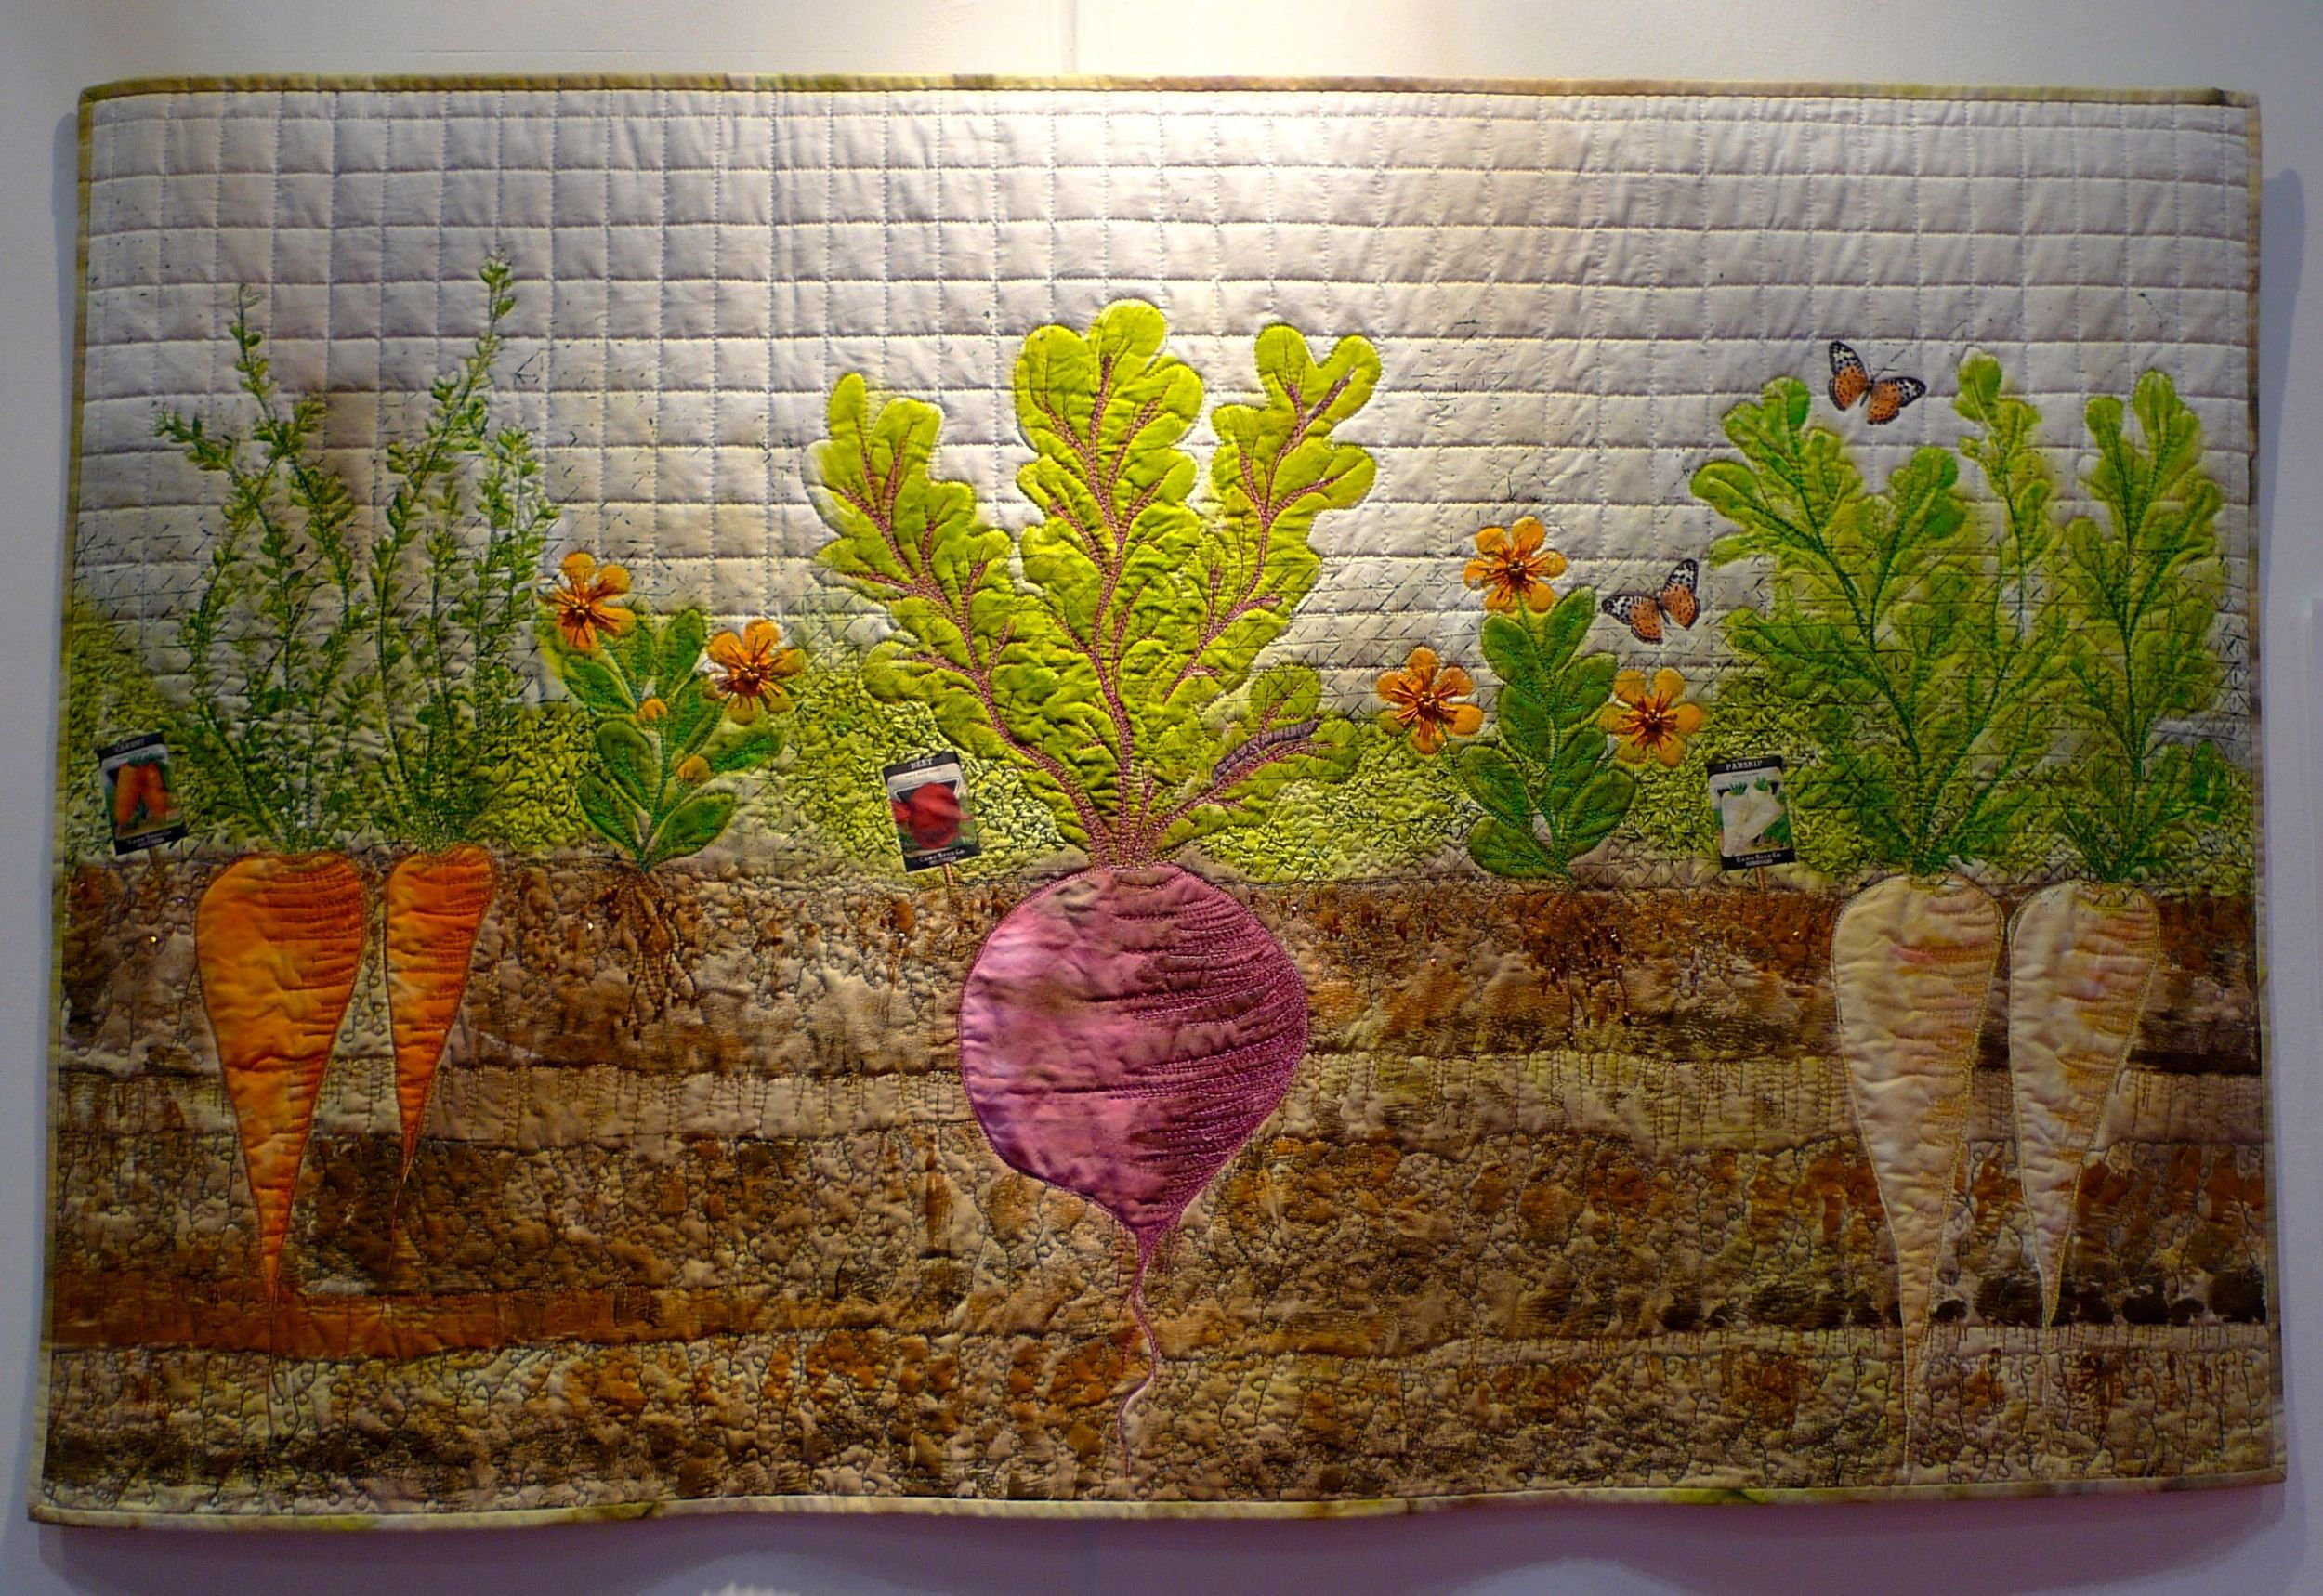 Beetroot, carrots and parsnips on a quilt